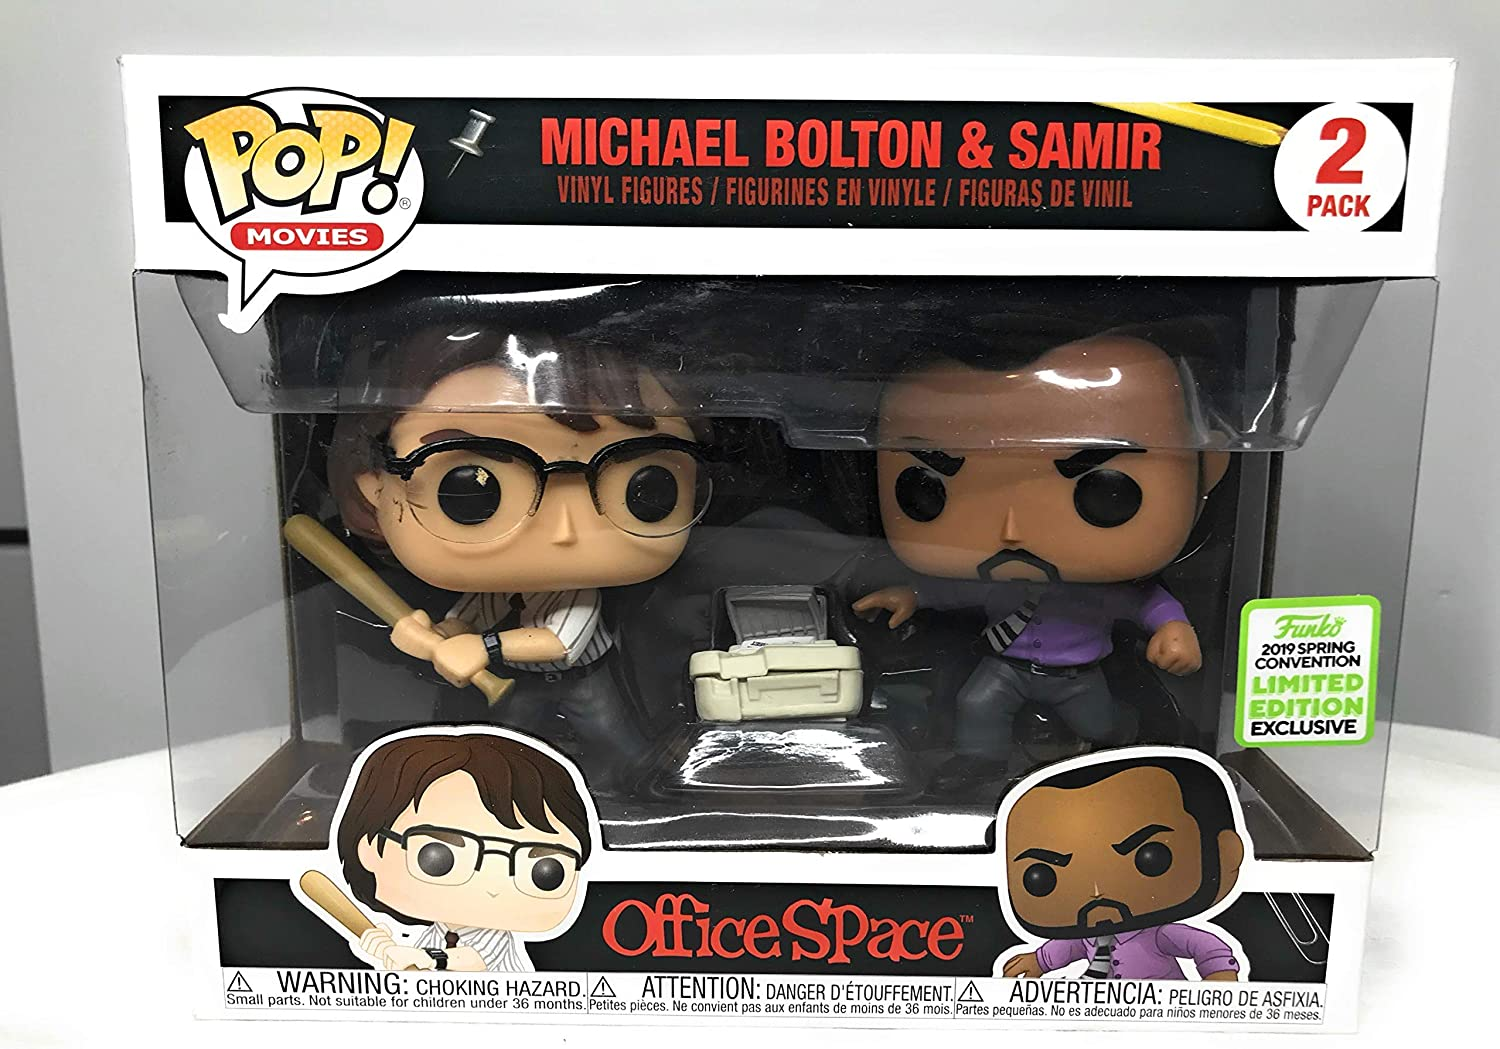 Funko POP! Movies: Office Space 2-Pack Michael Bolton & Samir Limited Edition Exclusive 2019 Spring Convention